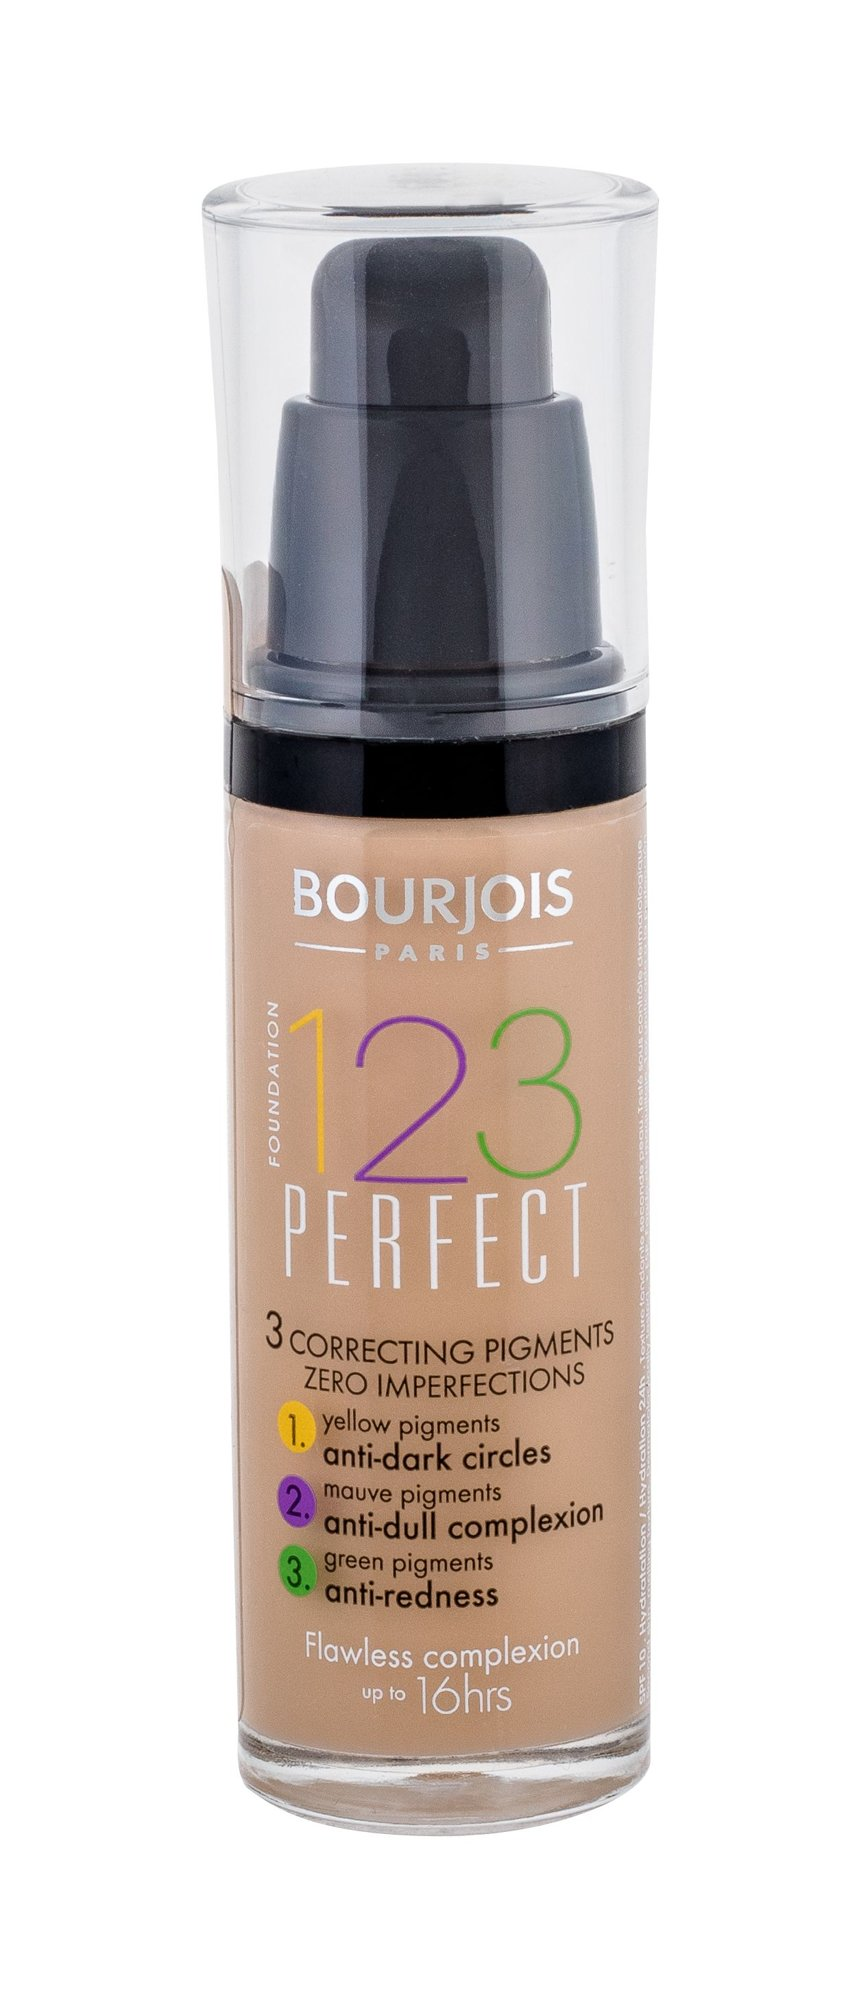 BOURJOIS Paris 123 Perfect Cosmetic 30ml 54 Beige